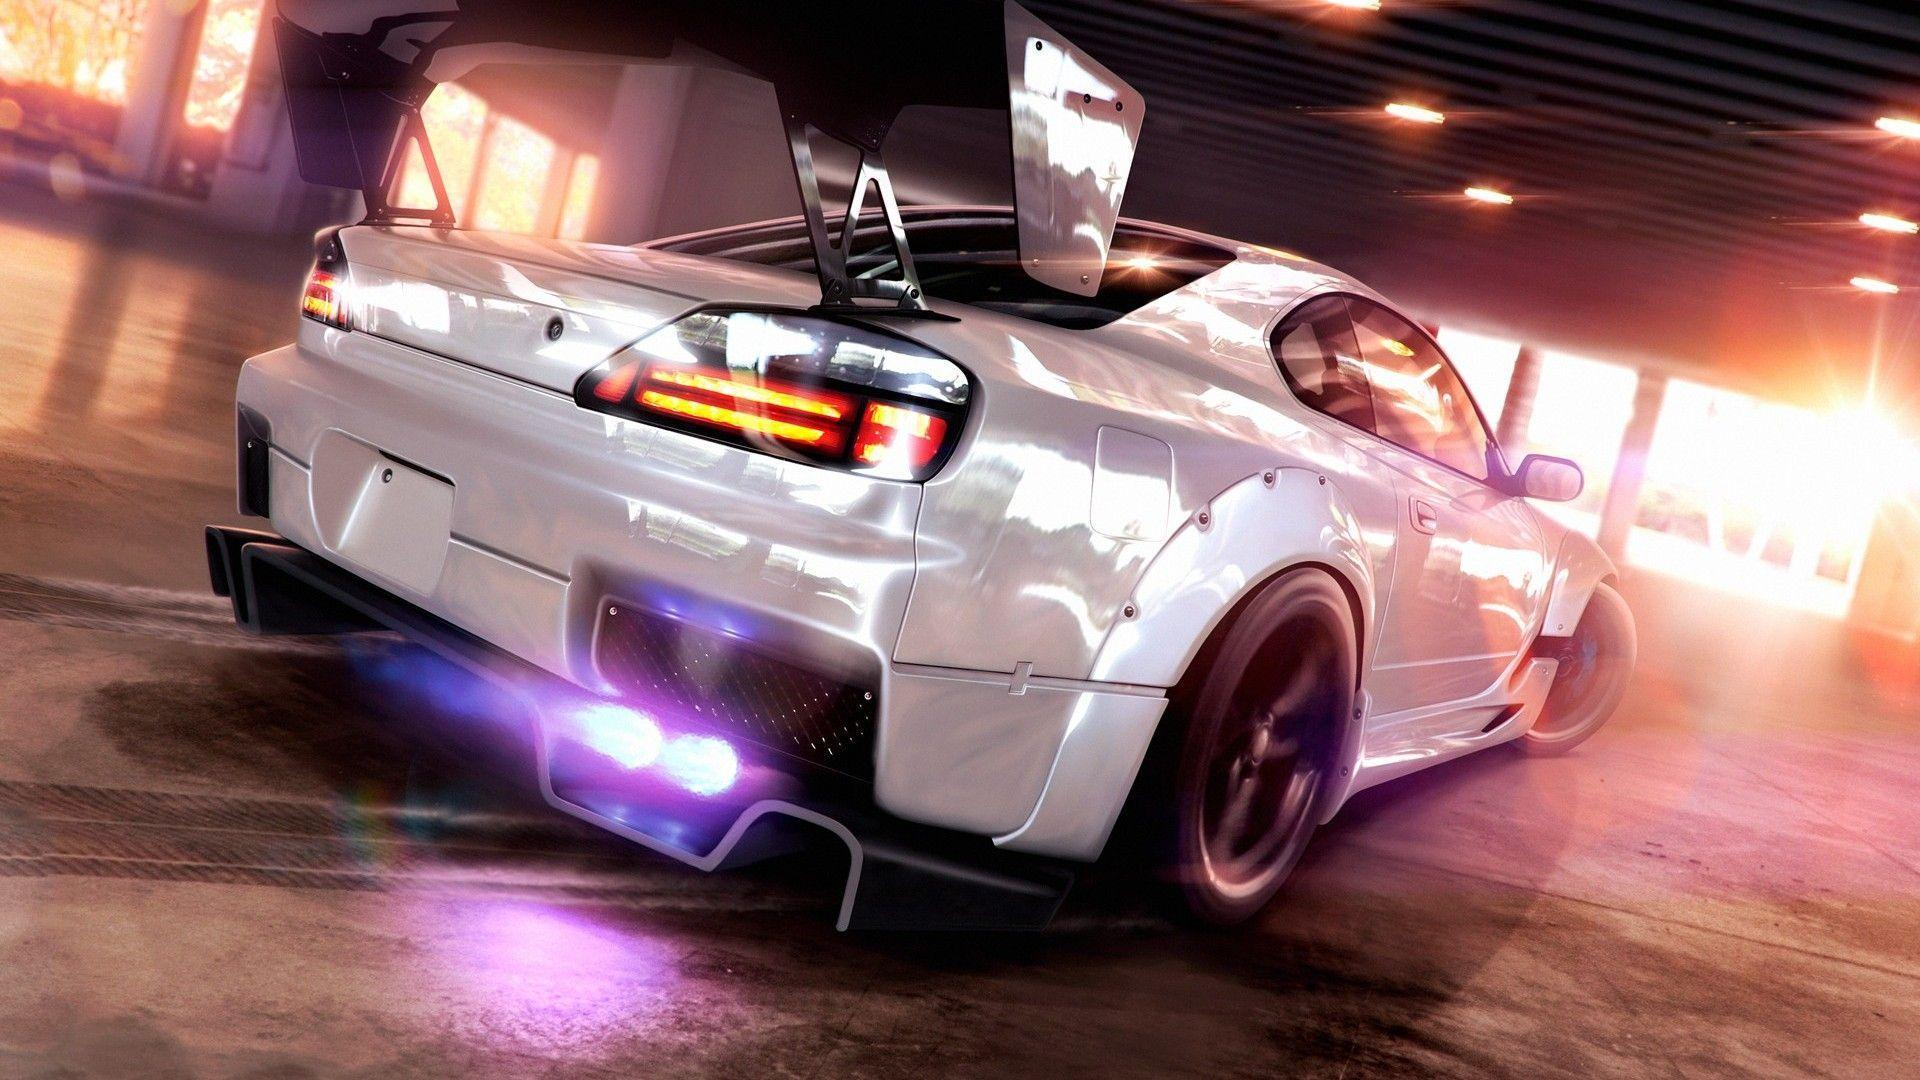 Nfs wallpapers wallpaper cave - Need for speed underground 1 wallpaper ...